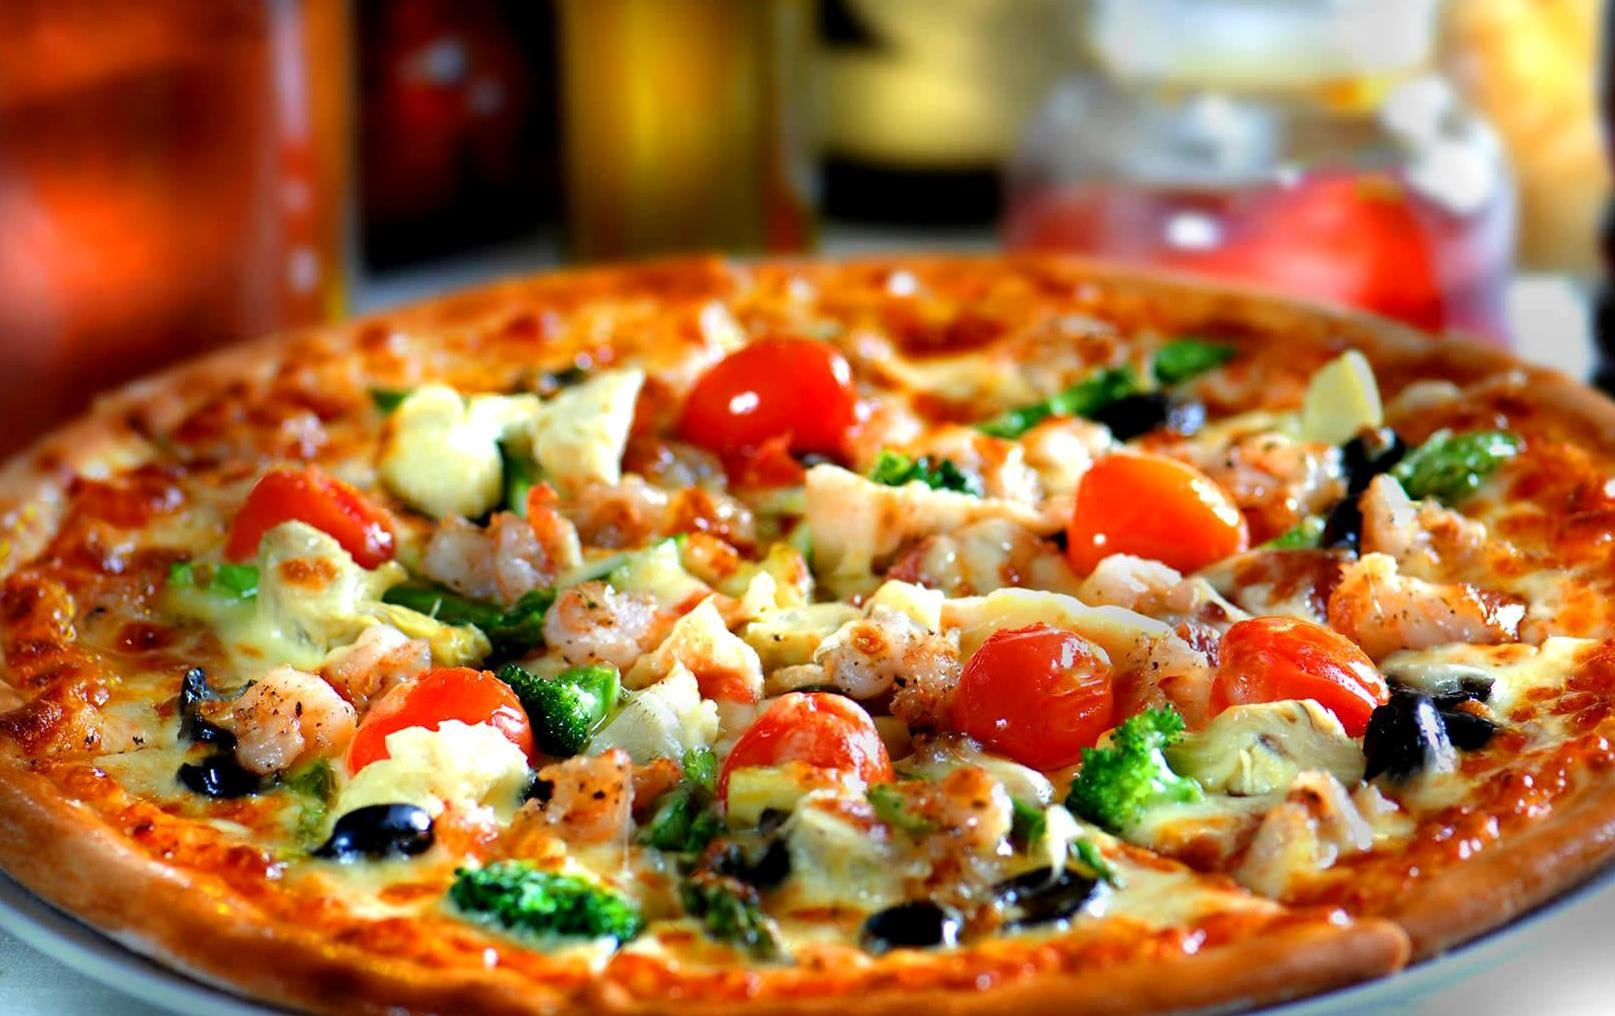 Restaurant Pizza Free Picture Vegetables Italian Food Diet Pizza Restaurant